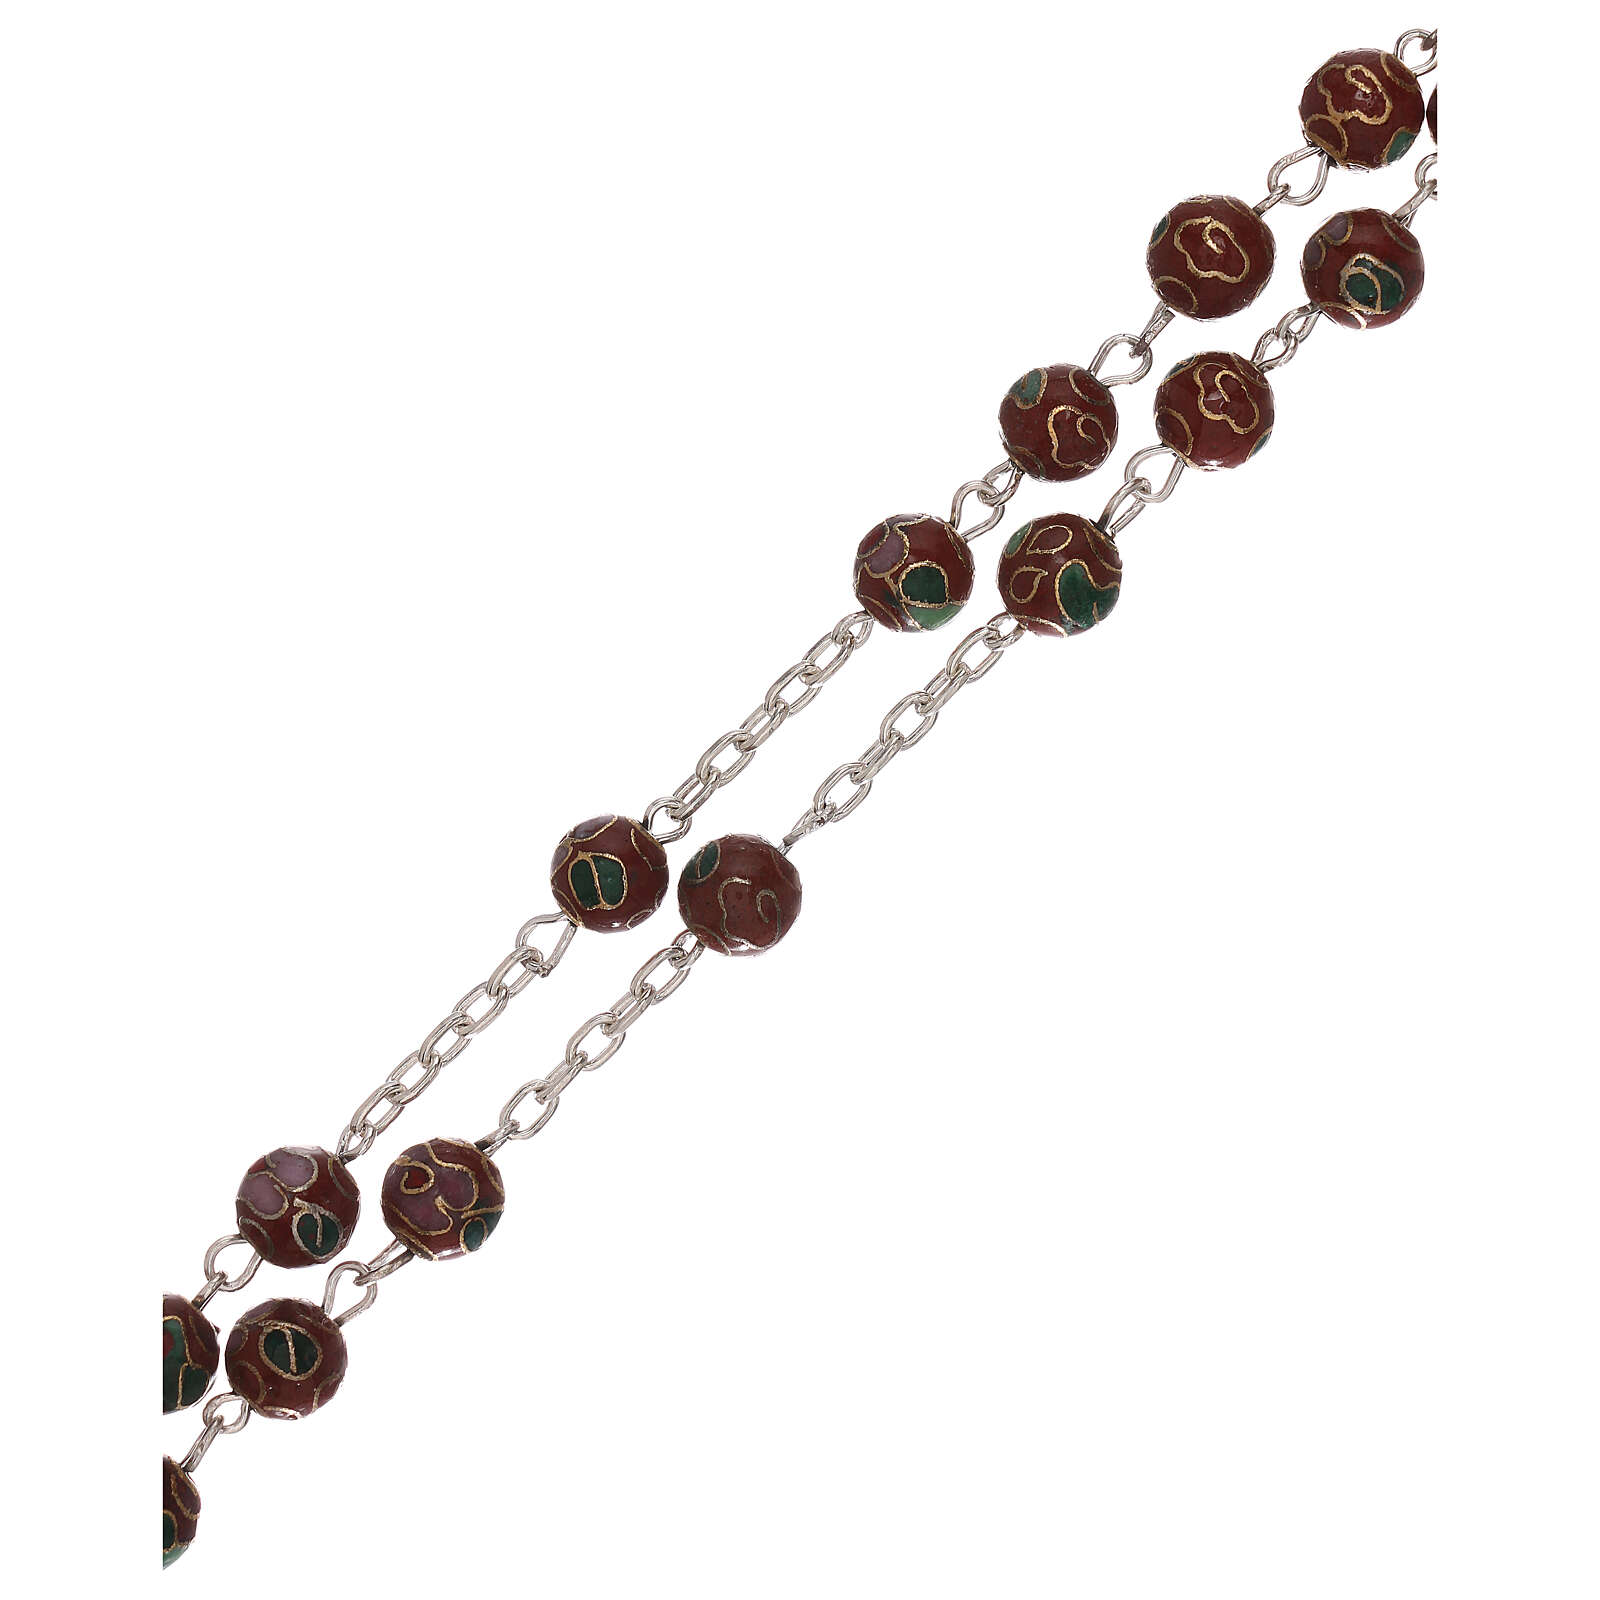 Rosary of 800 silver with brown cloisonné beads 4